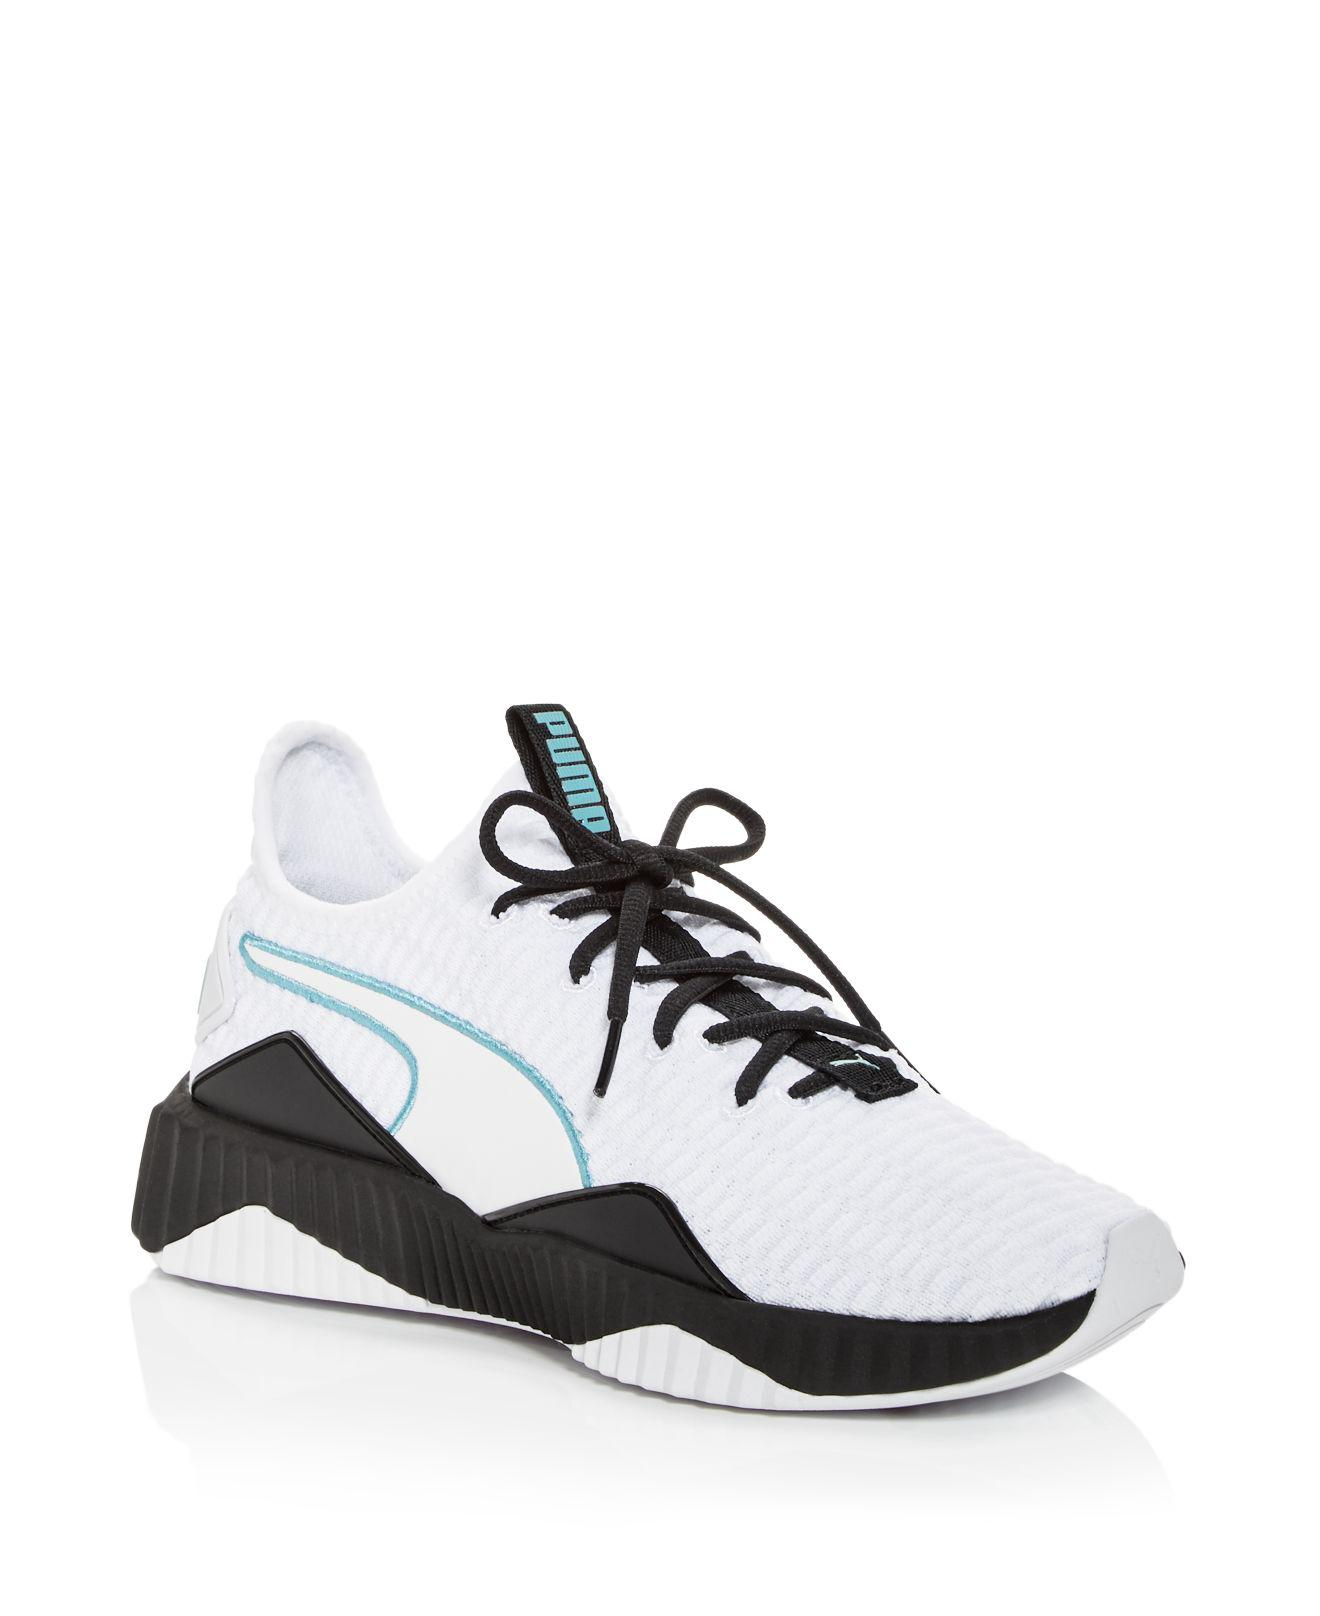 9dc446d96c957f Lyst - Puma Women s Defy Knit Lace Up Sneakers in White for Men